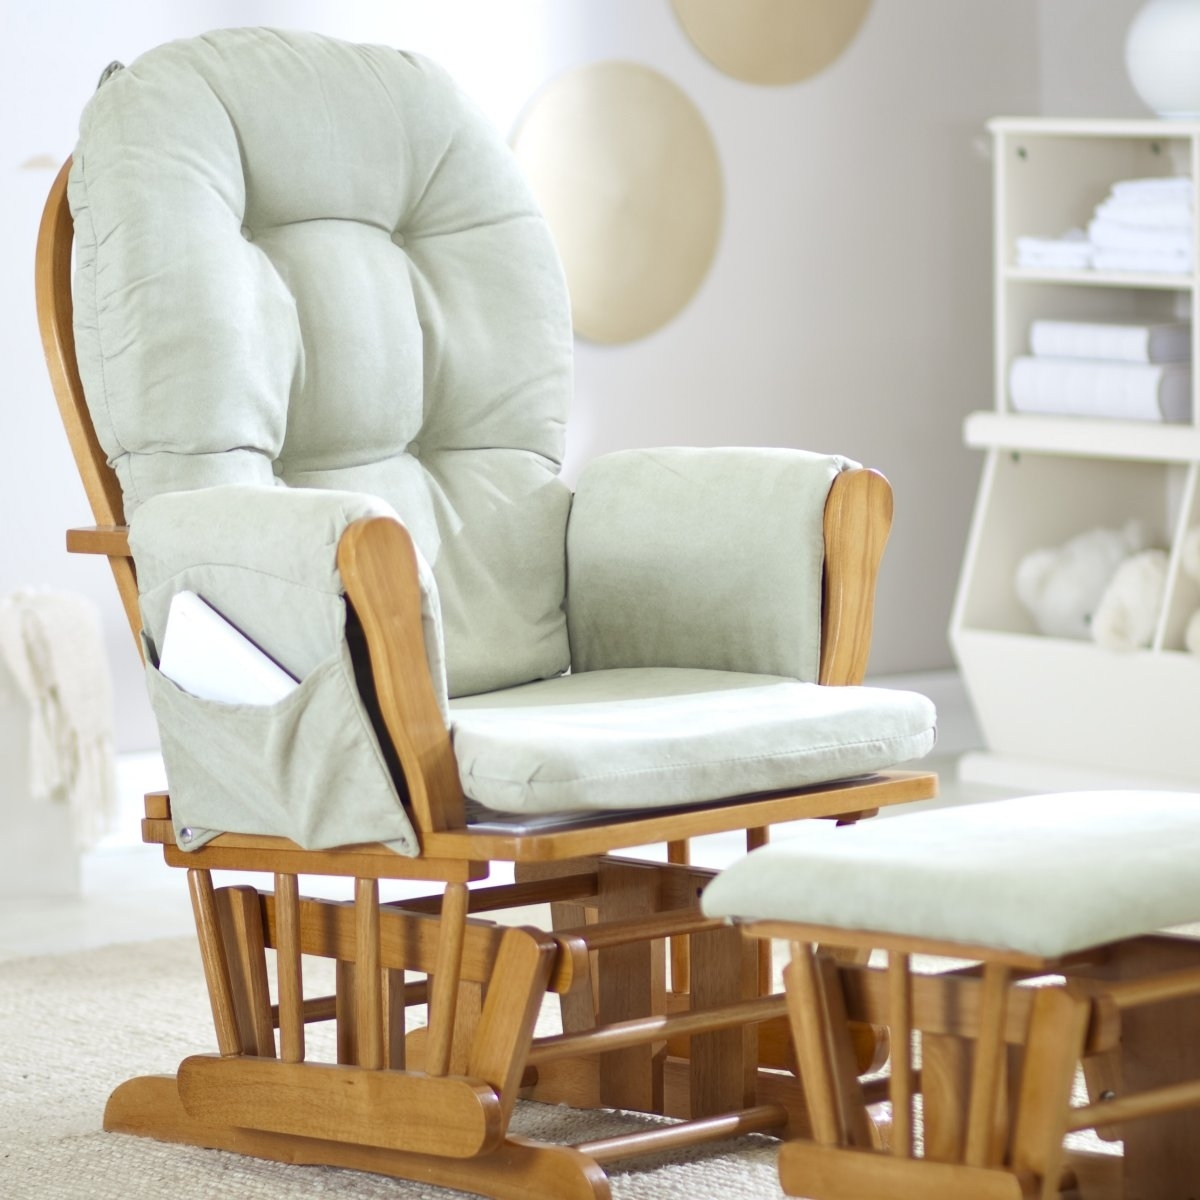 Amazing Rocking Chairs Nursery — Wilson Home Ideas : Healthy In Rocking Chairs For Nursery (#1 of 15)